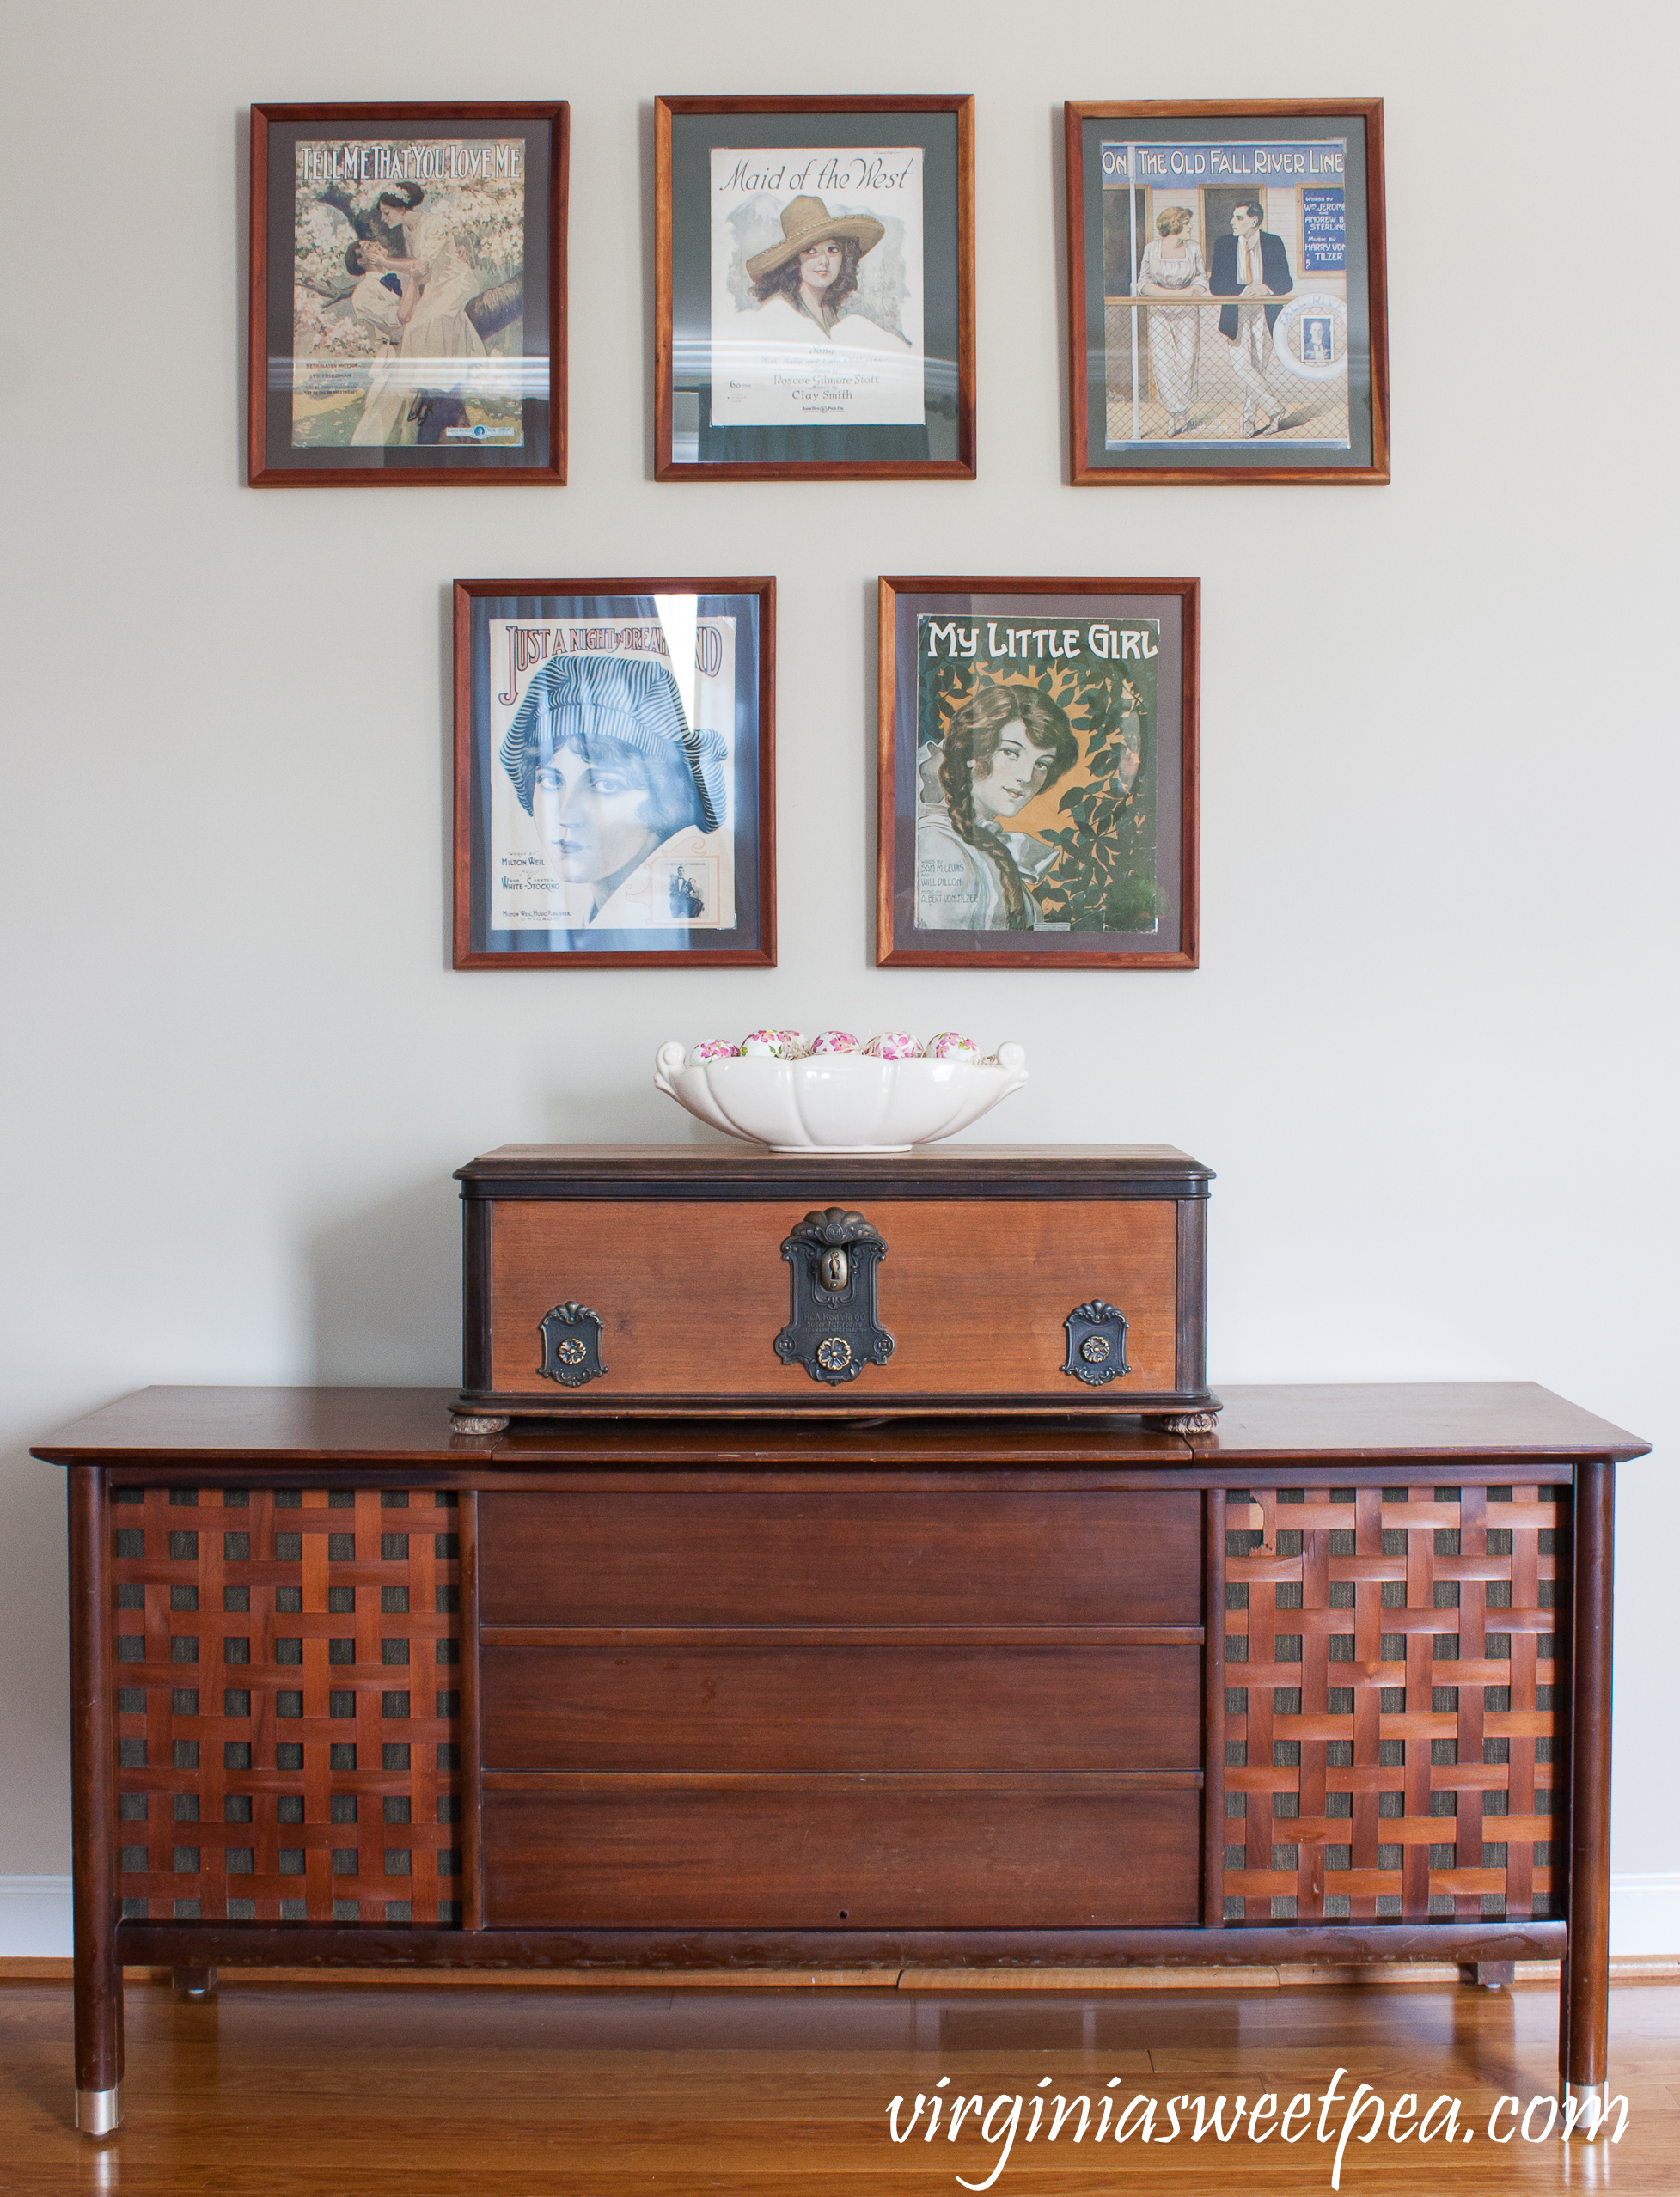 1960's Montgomery Ward Stereo Console with a box made from an old radio and WWI era sheet music